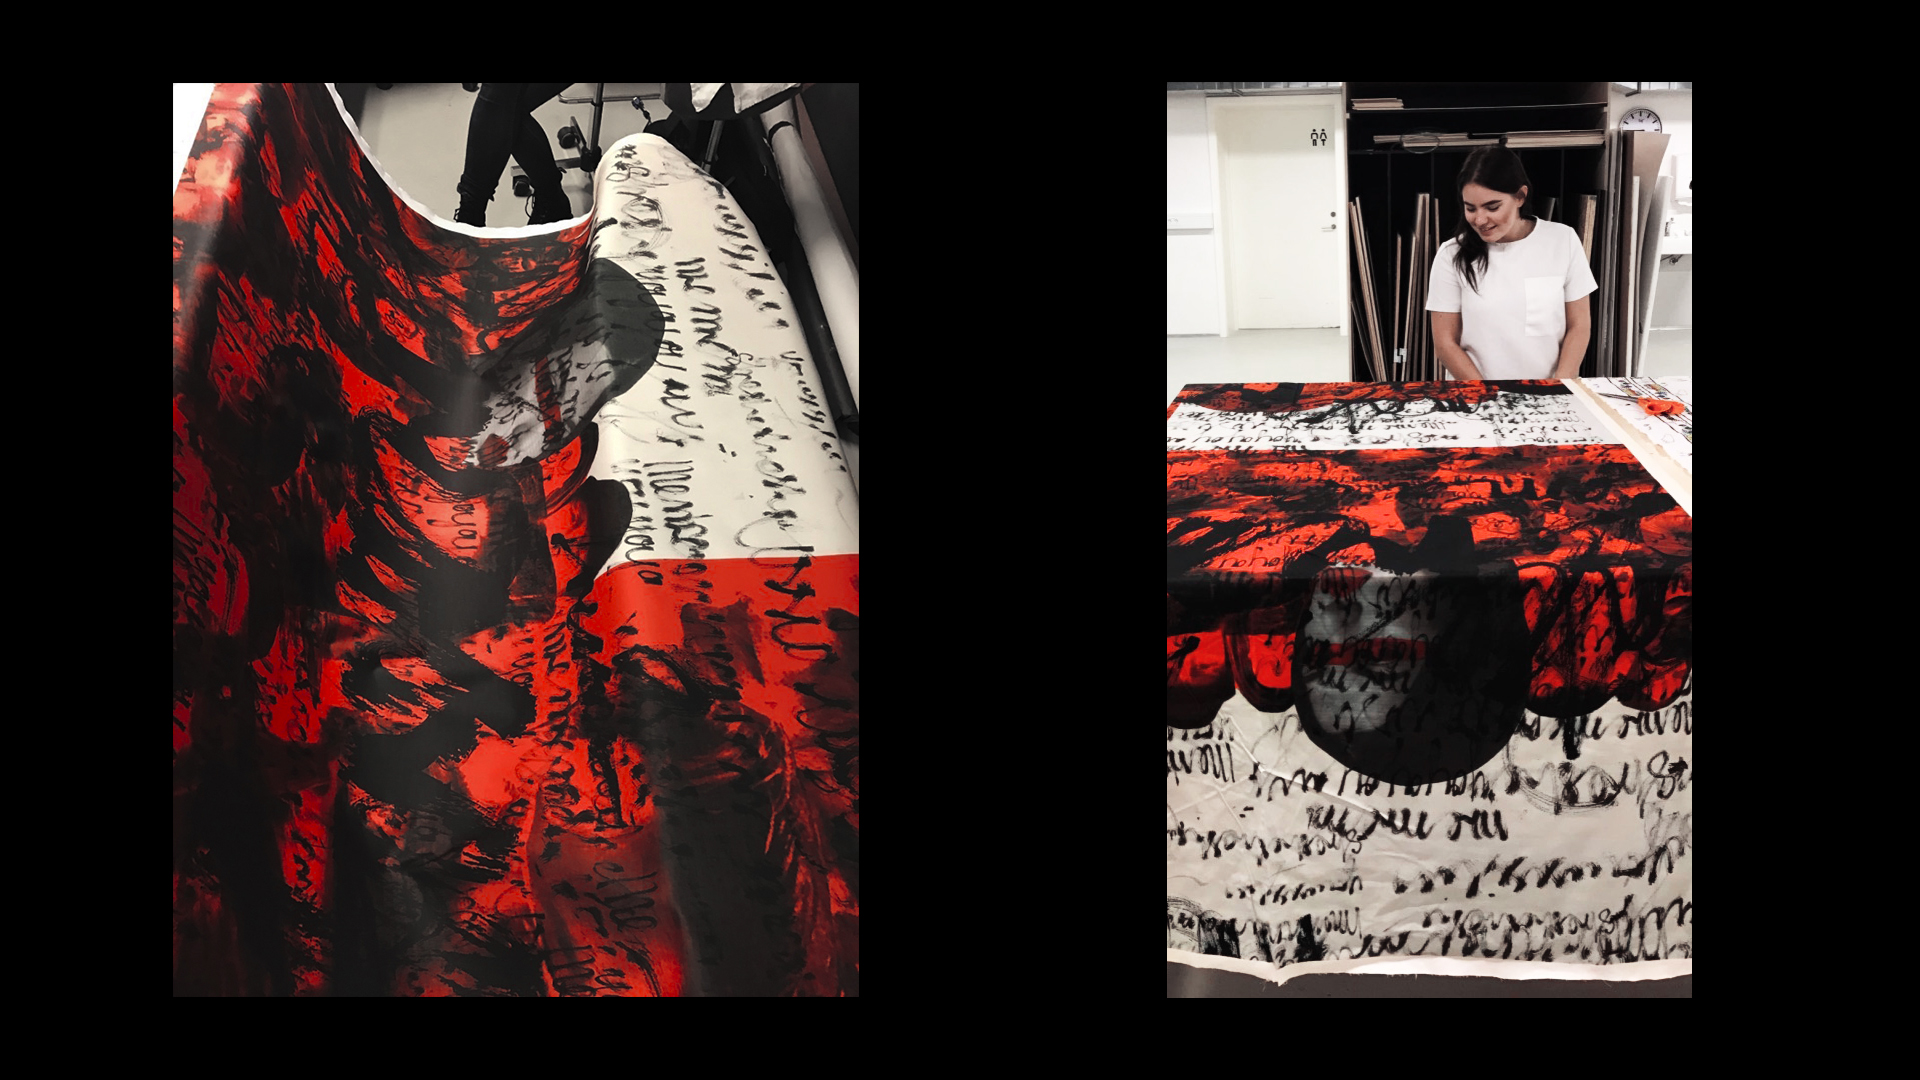 Artwork was printed on 100% cotton in size 150 x 250 cm in scale 1:1